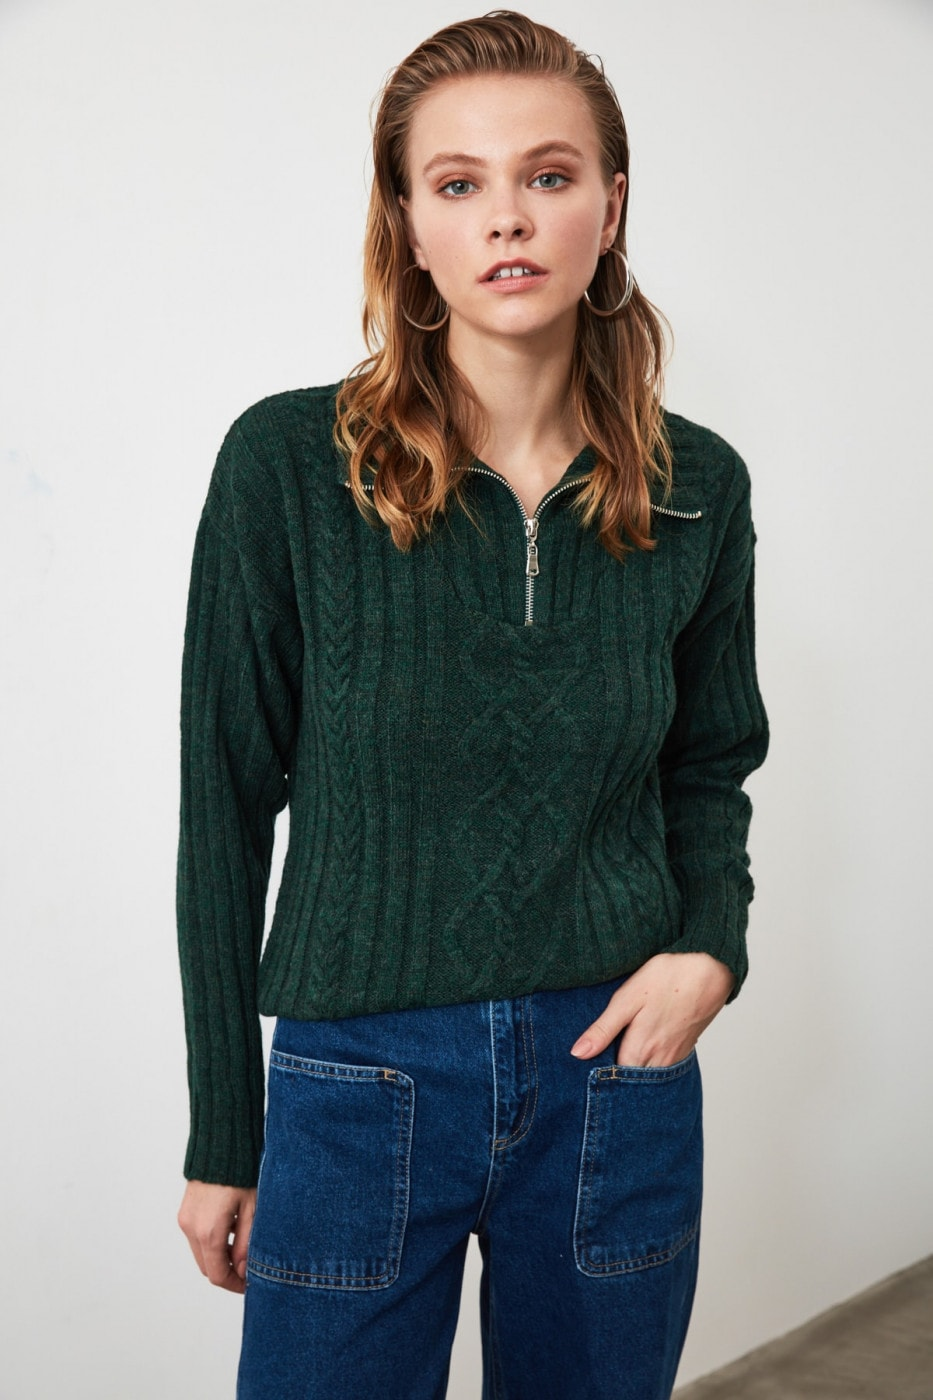 Trendyol Green ZipperK Knit Sweater